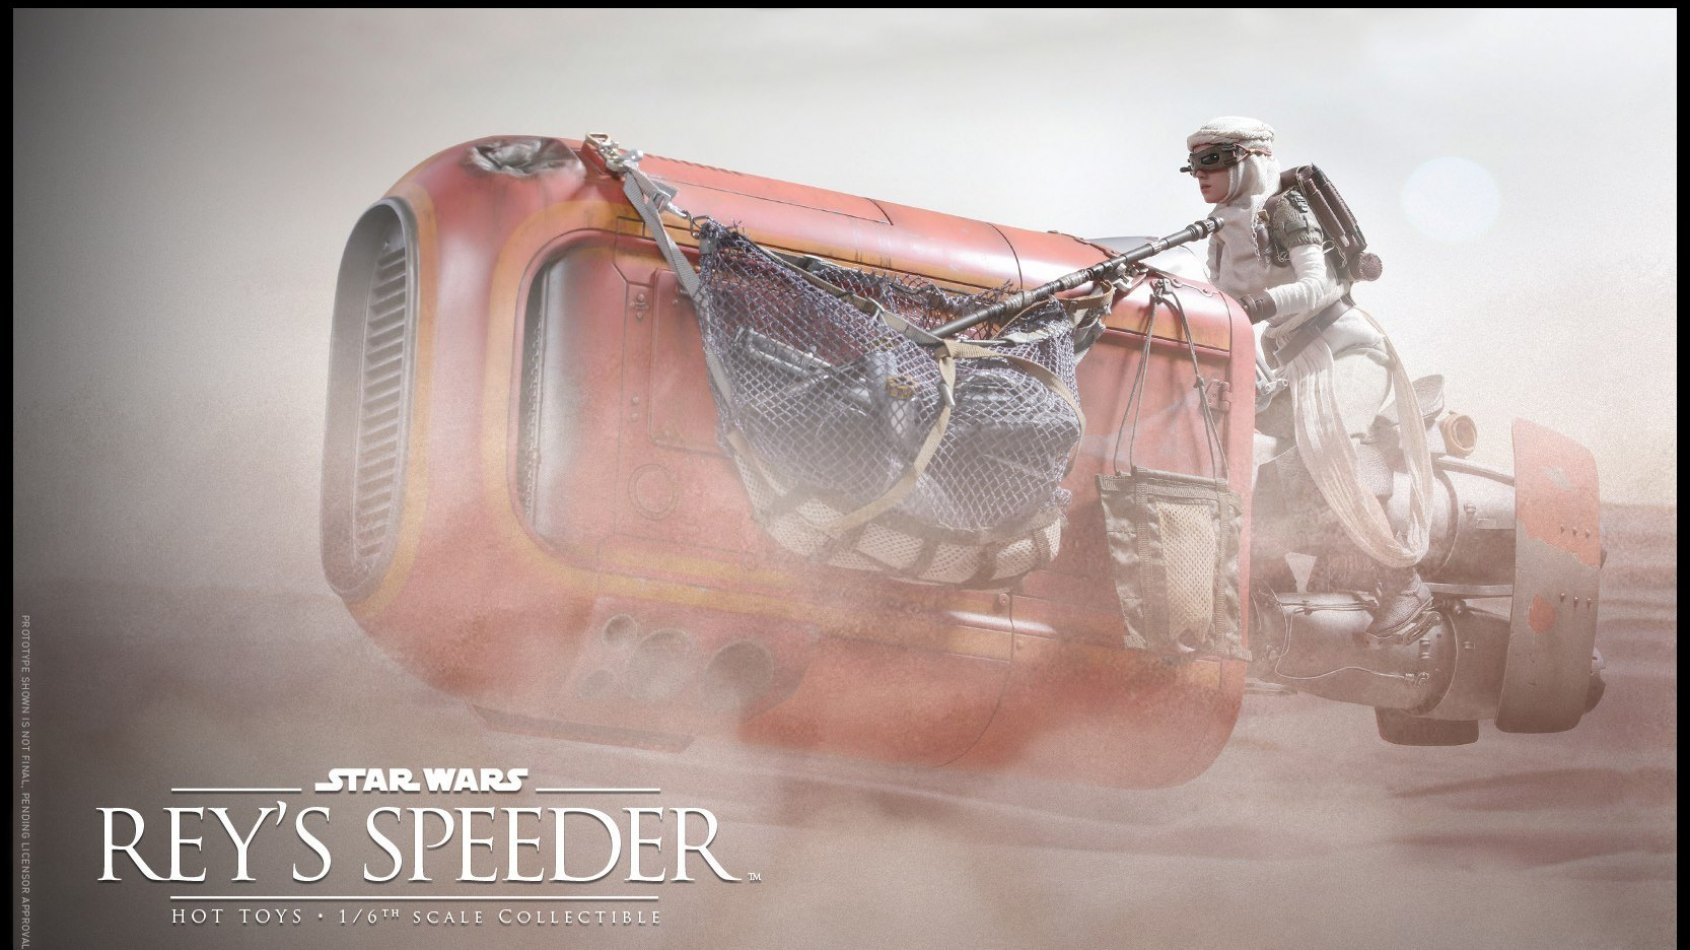 Hot Toys: figurine de Rey pilleuse d'épaves et speeder